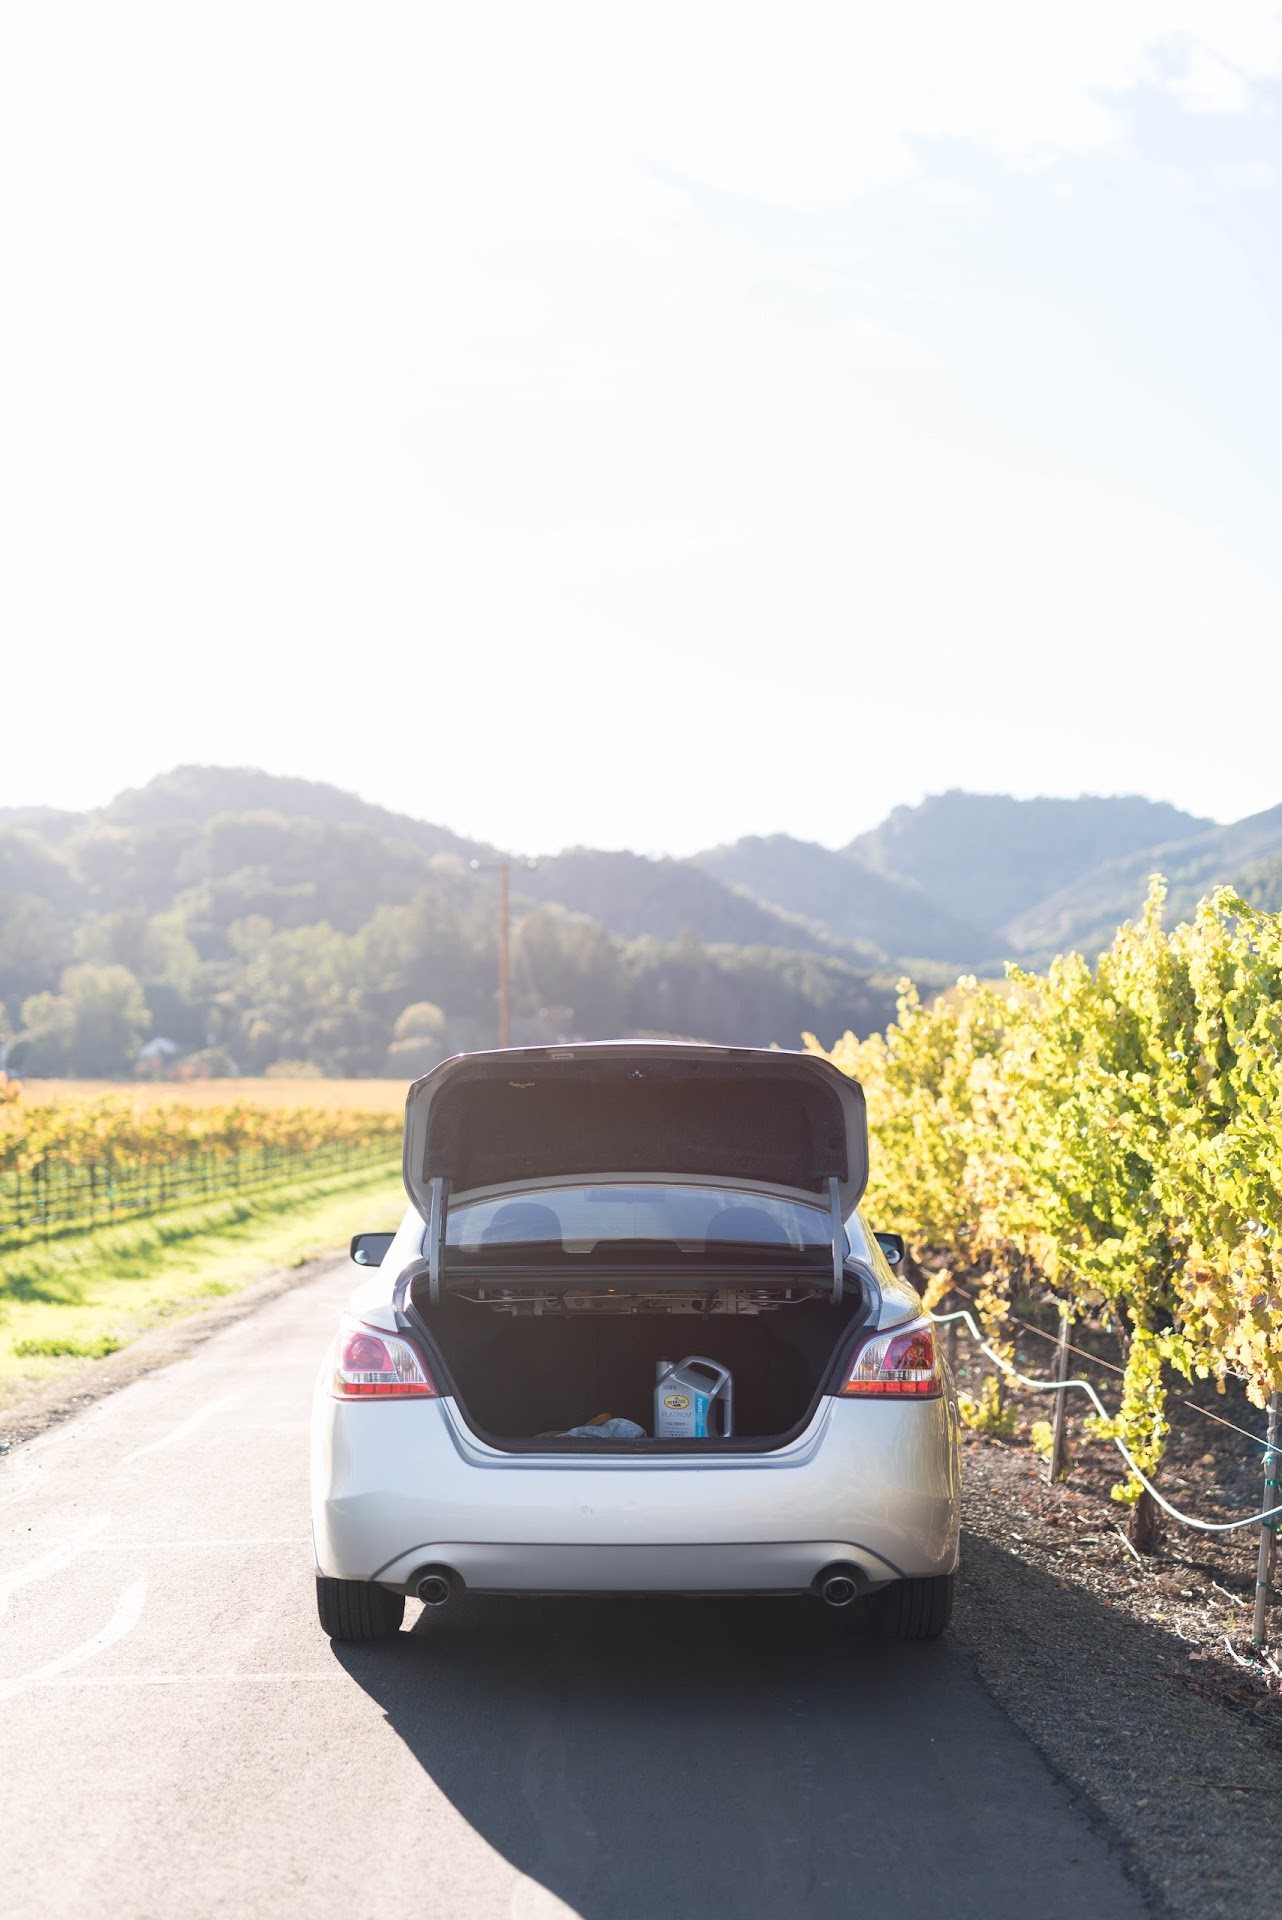 road trip, cheap tips, how to save money on road trips, california, napa valley, yountville, photography, car, vineyards, fall in napa, autumn, oil change tips, car trunk